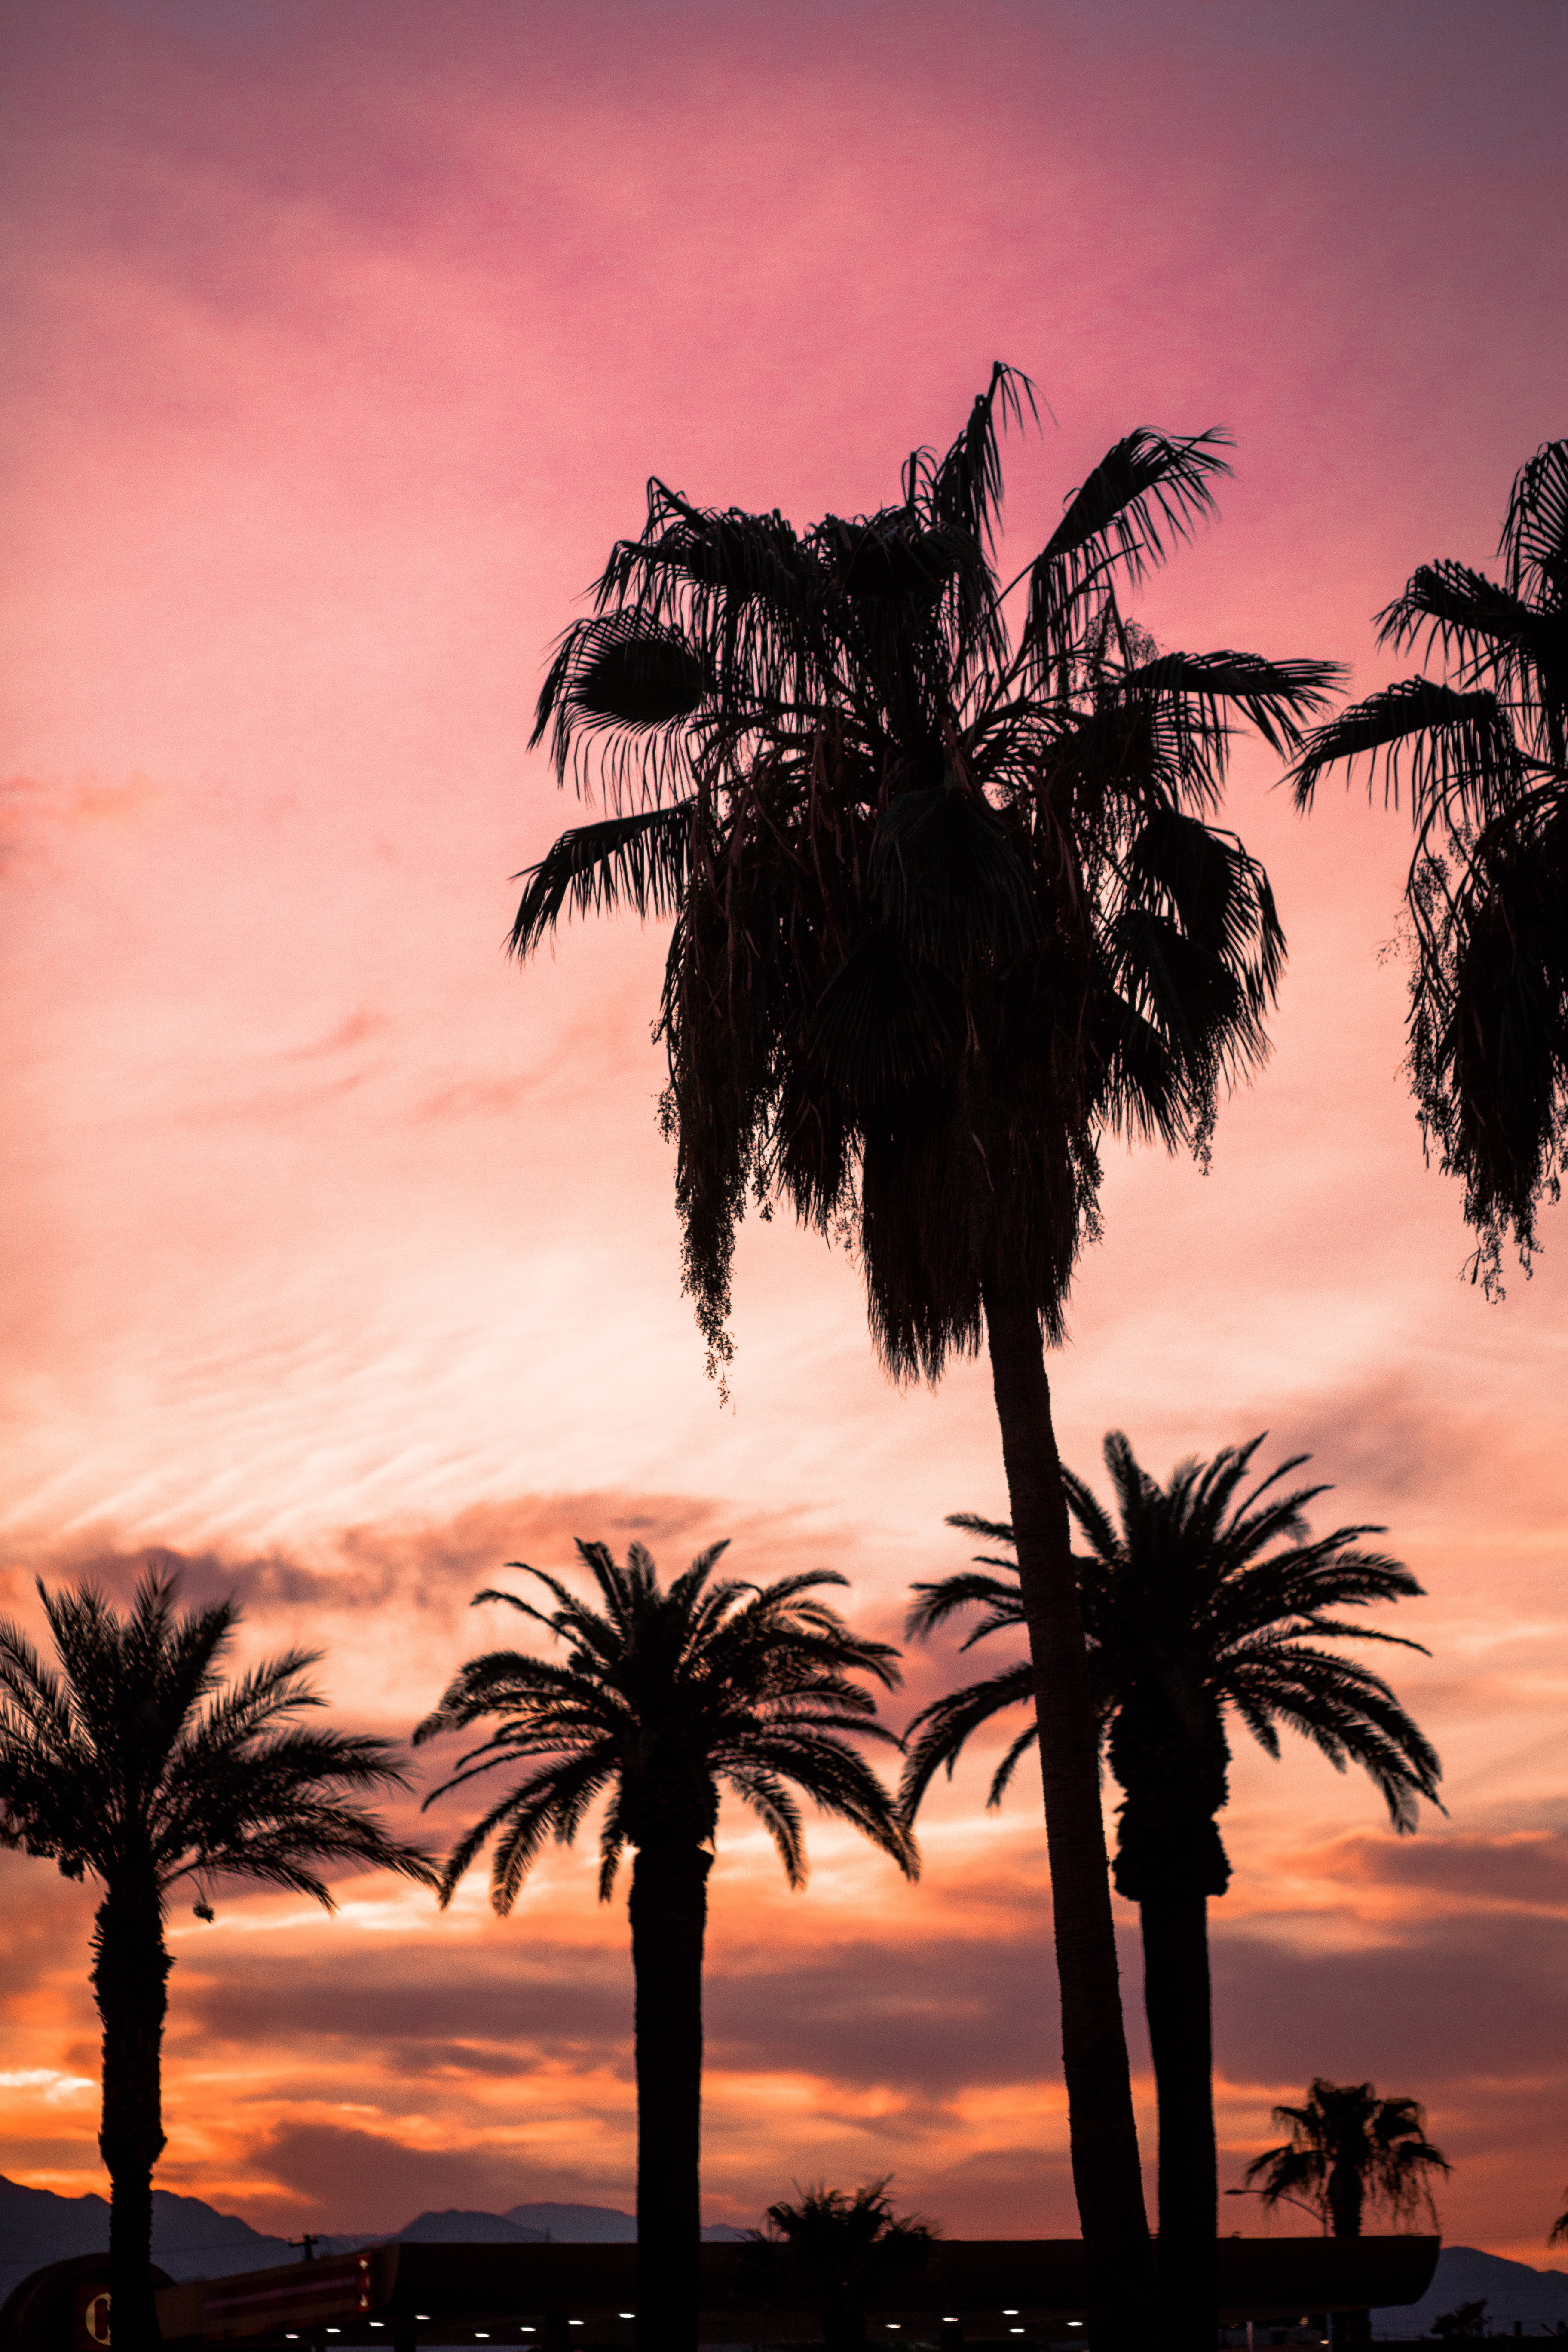 silhouette of palm trees during sunset